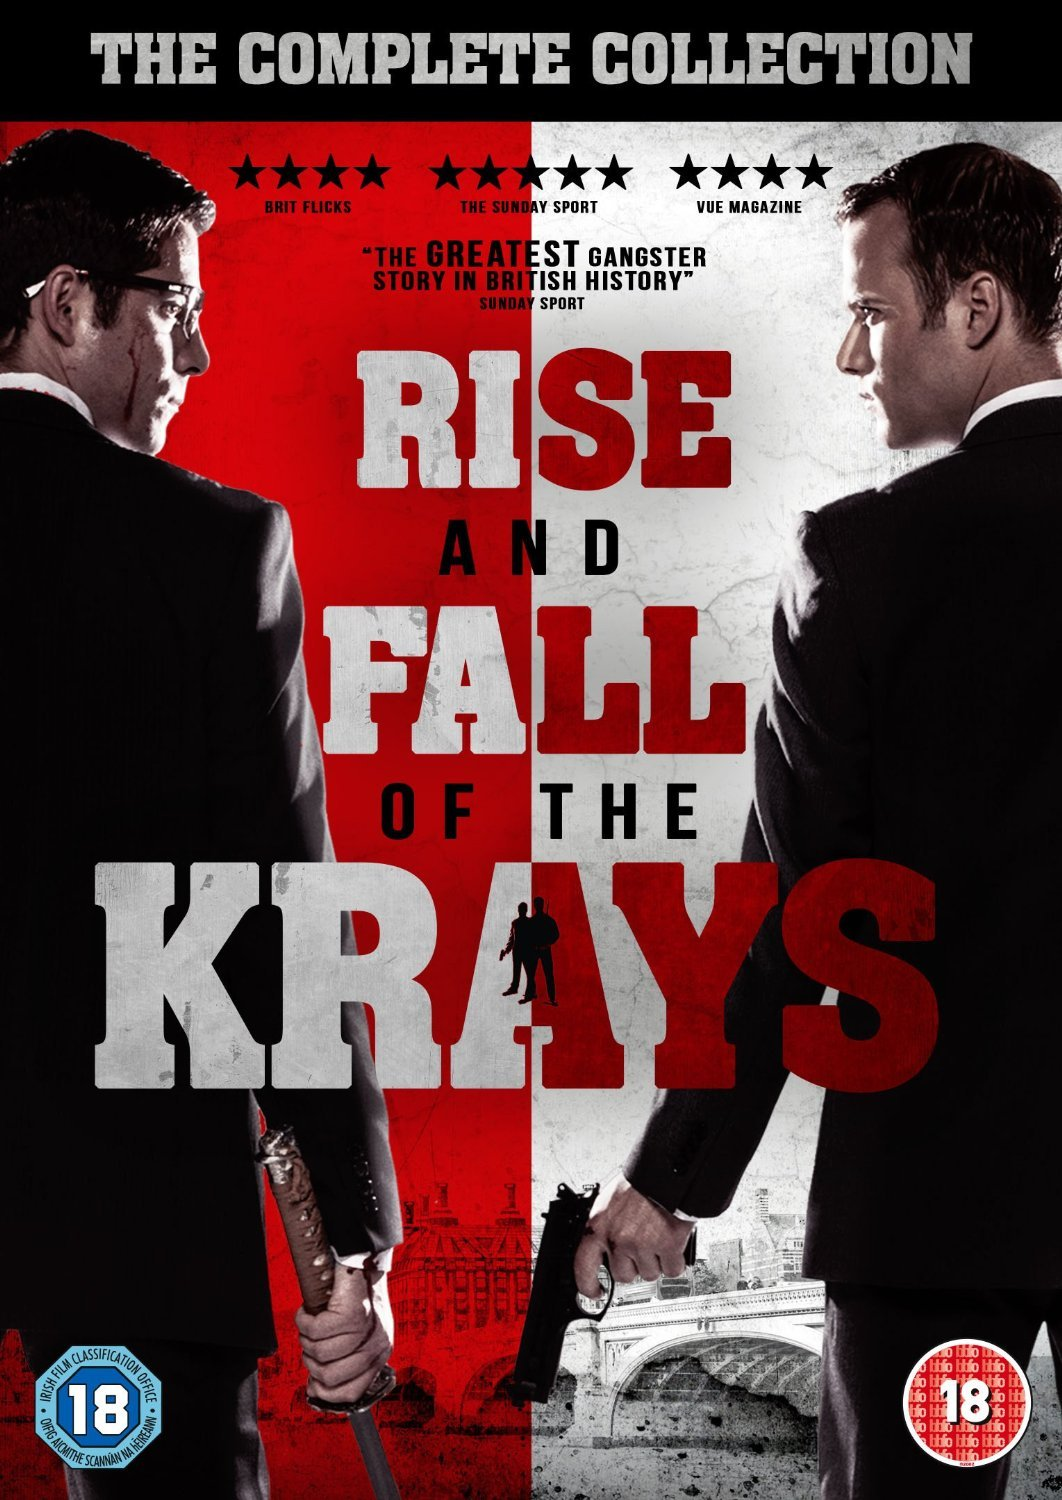 The Rise And Fall Of The Krays [DVD] [2017]